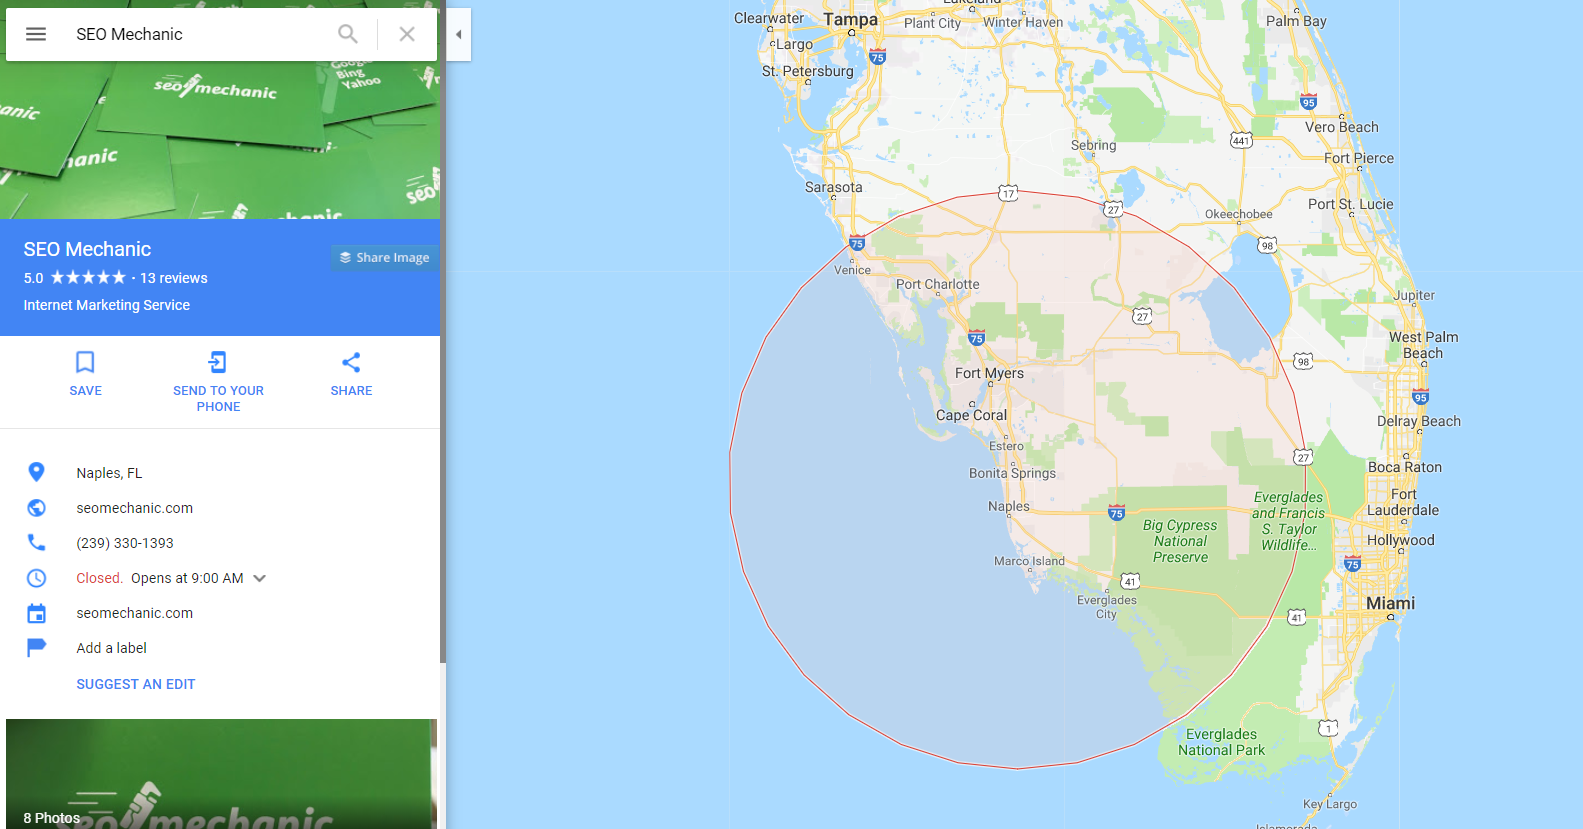 When Do Google Maps Update? - SEO Mechanic